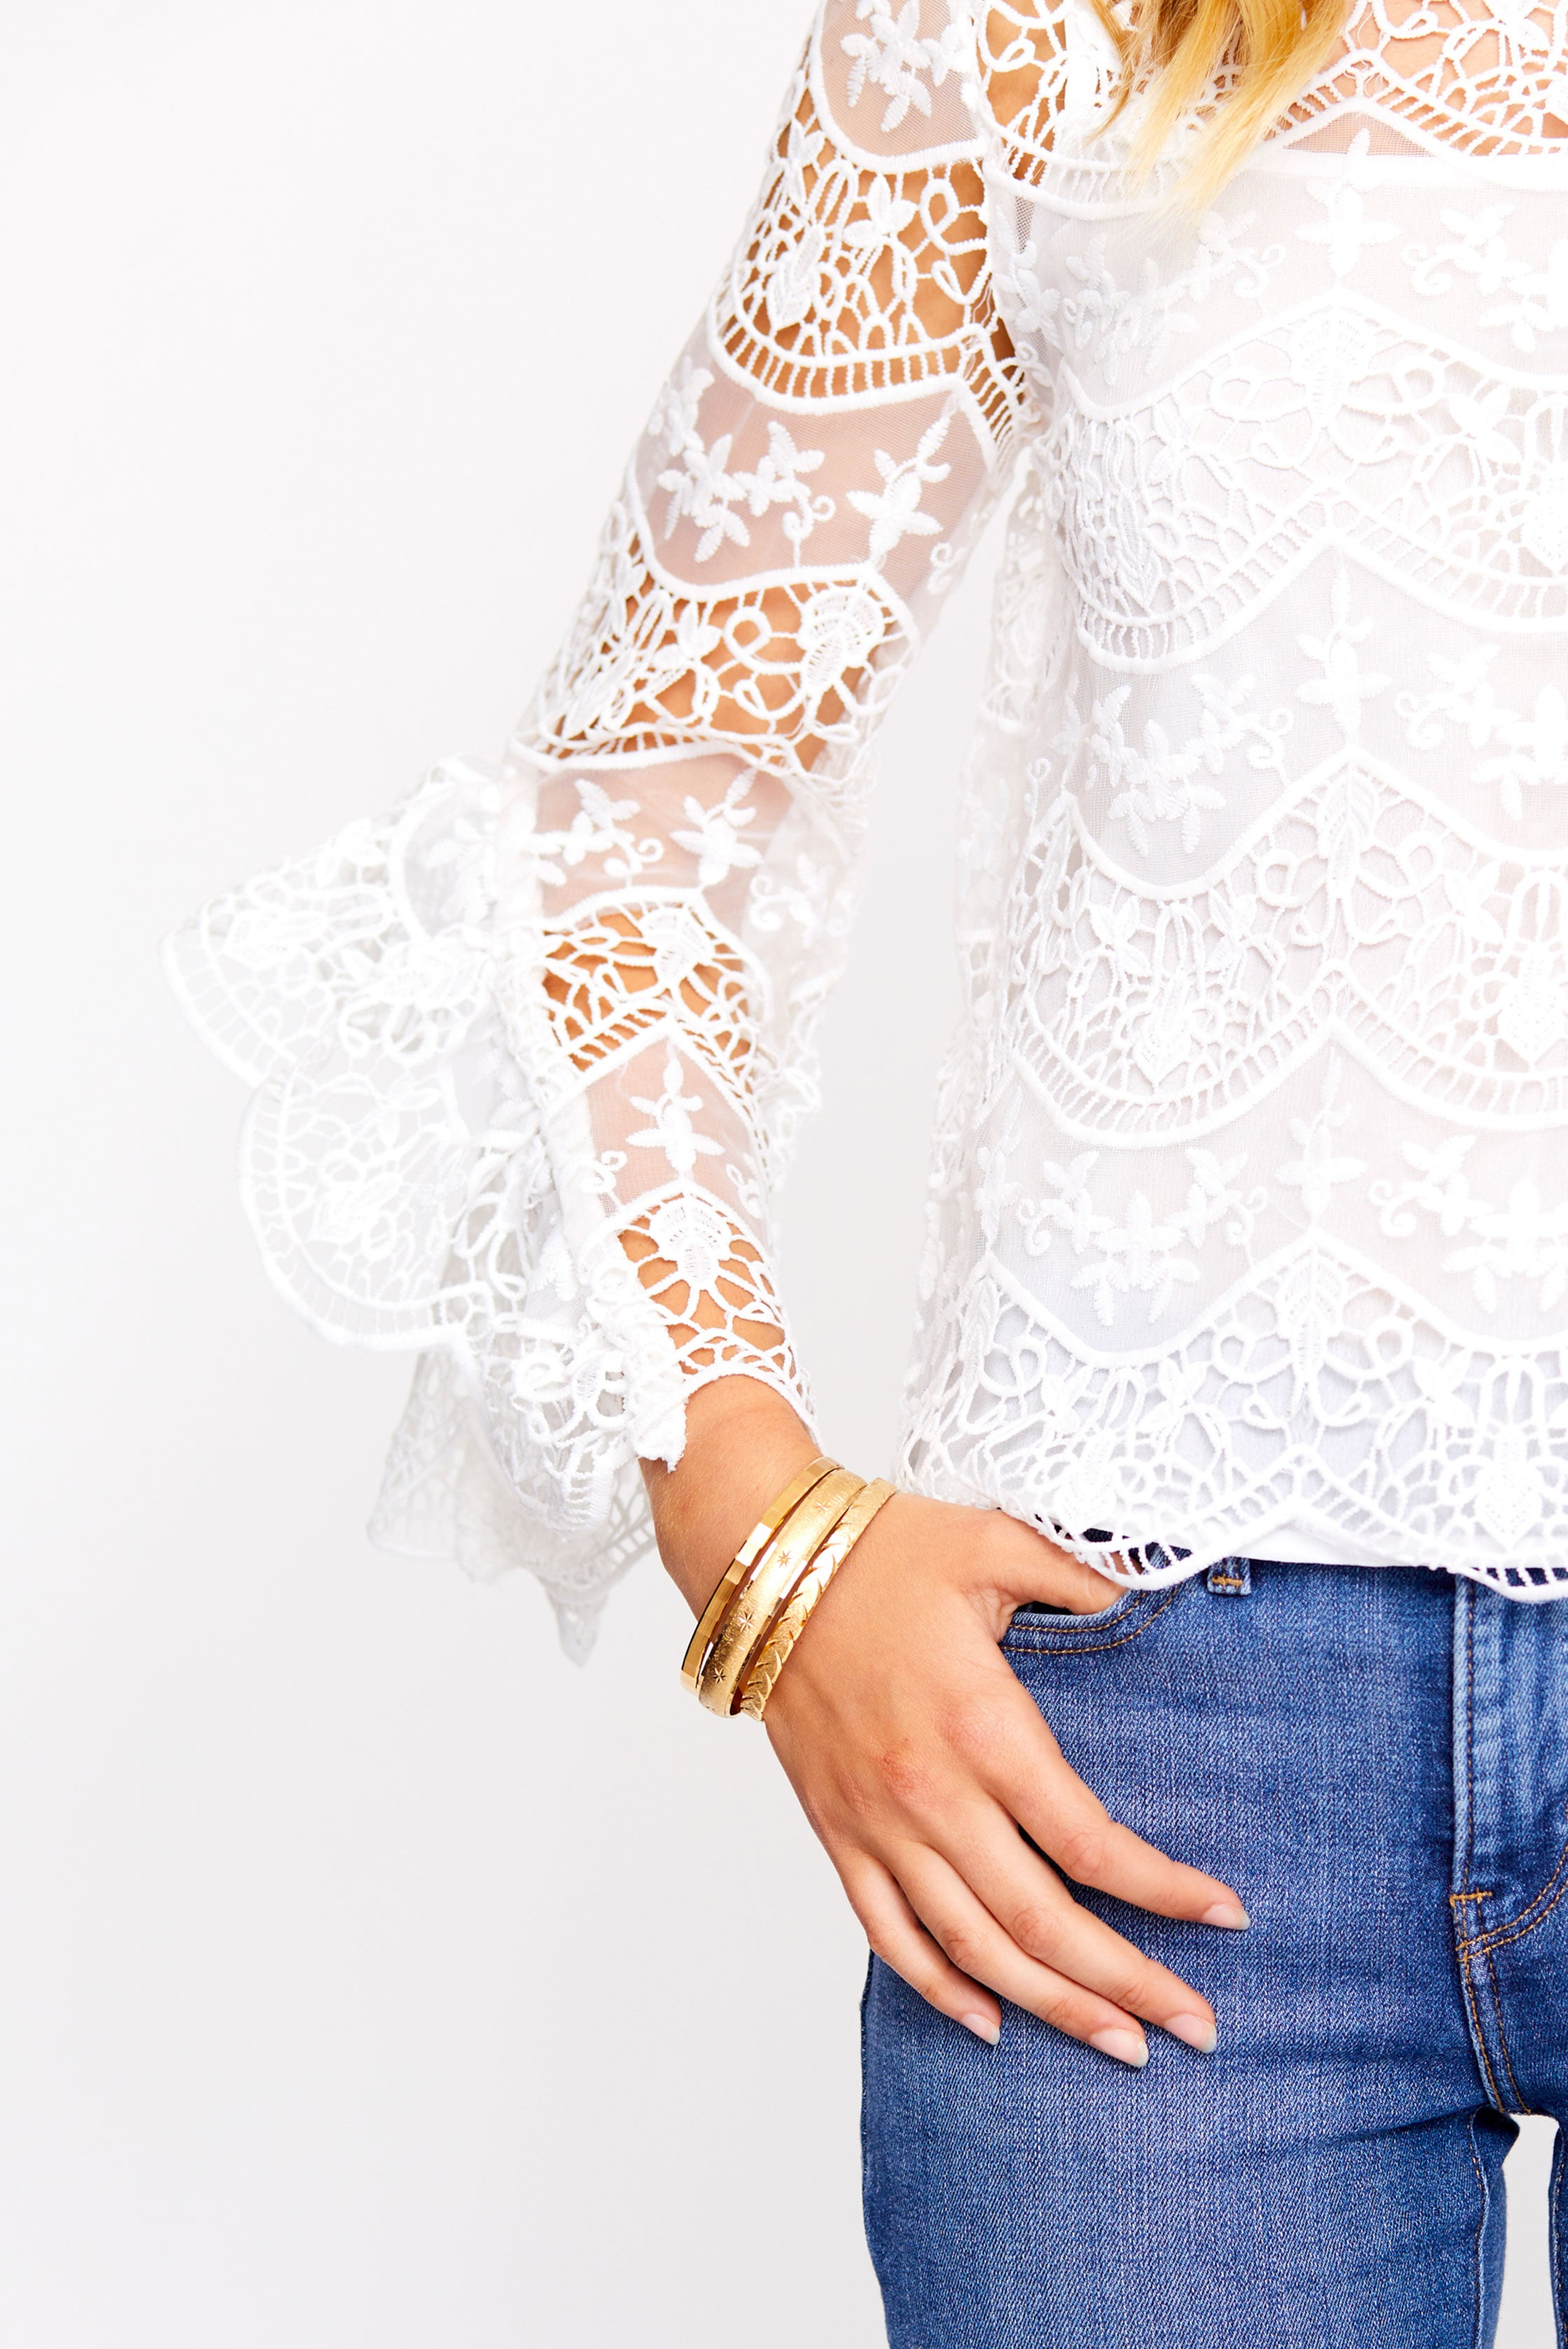 Lace bell sleeve top and gold bangles from Sweet & Spark.